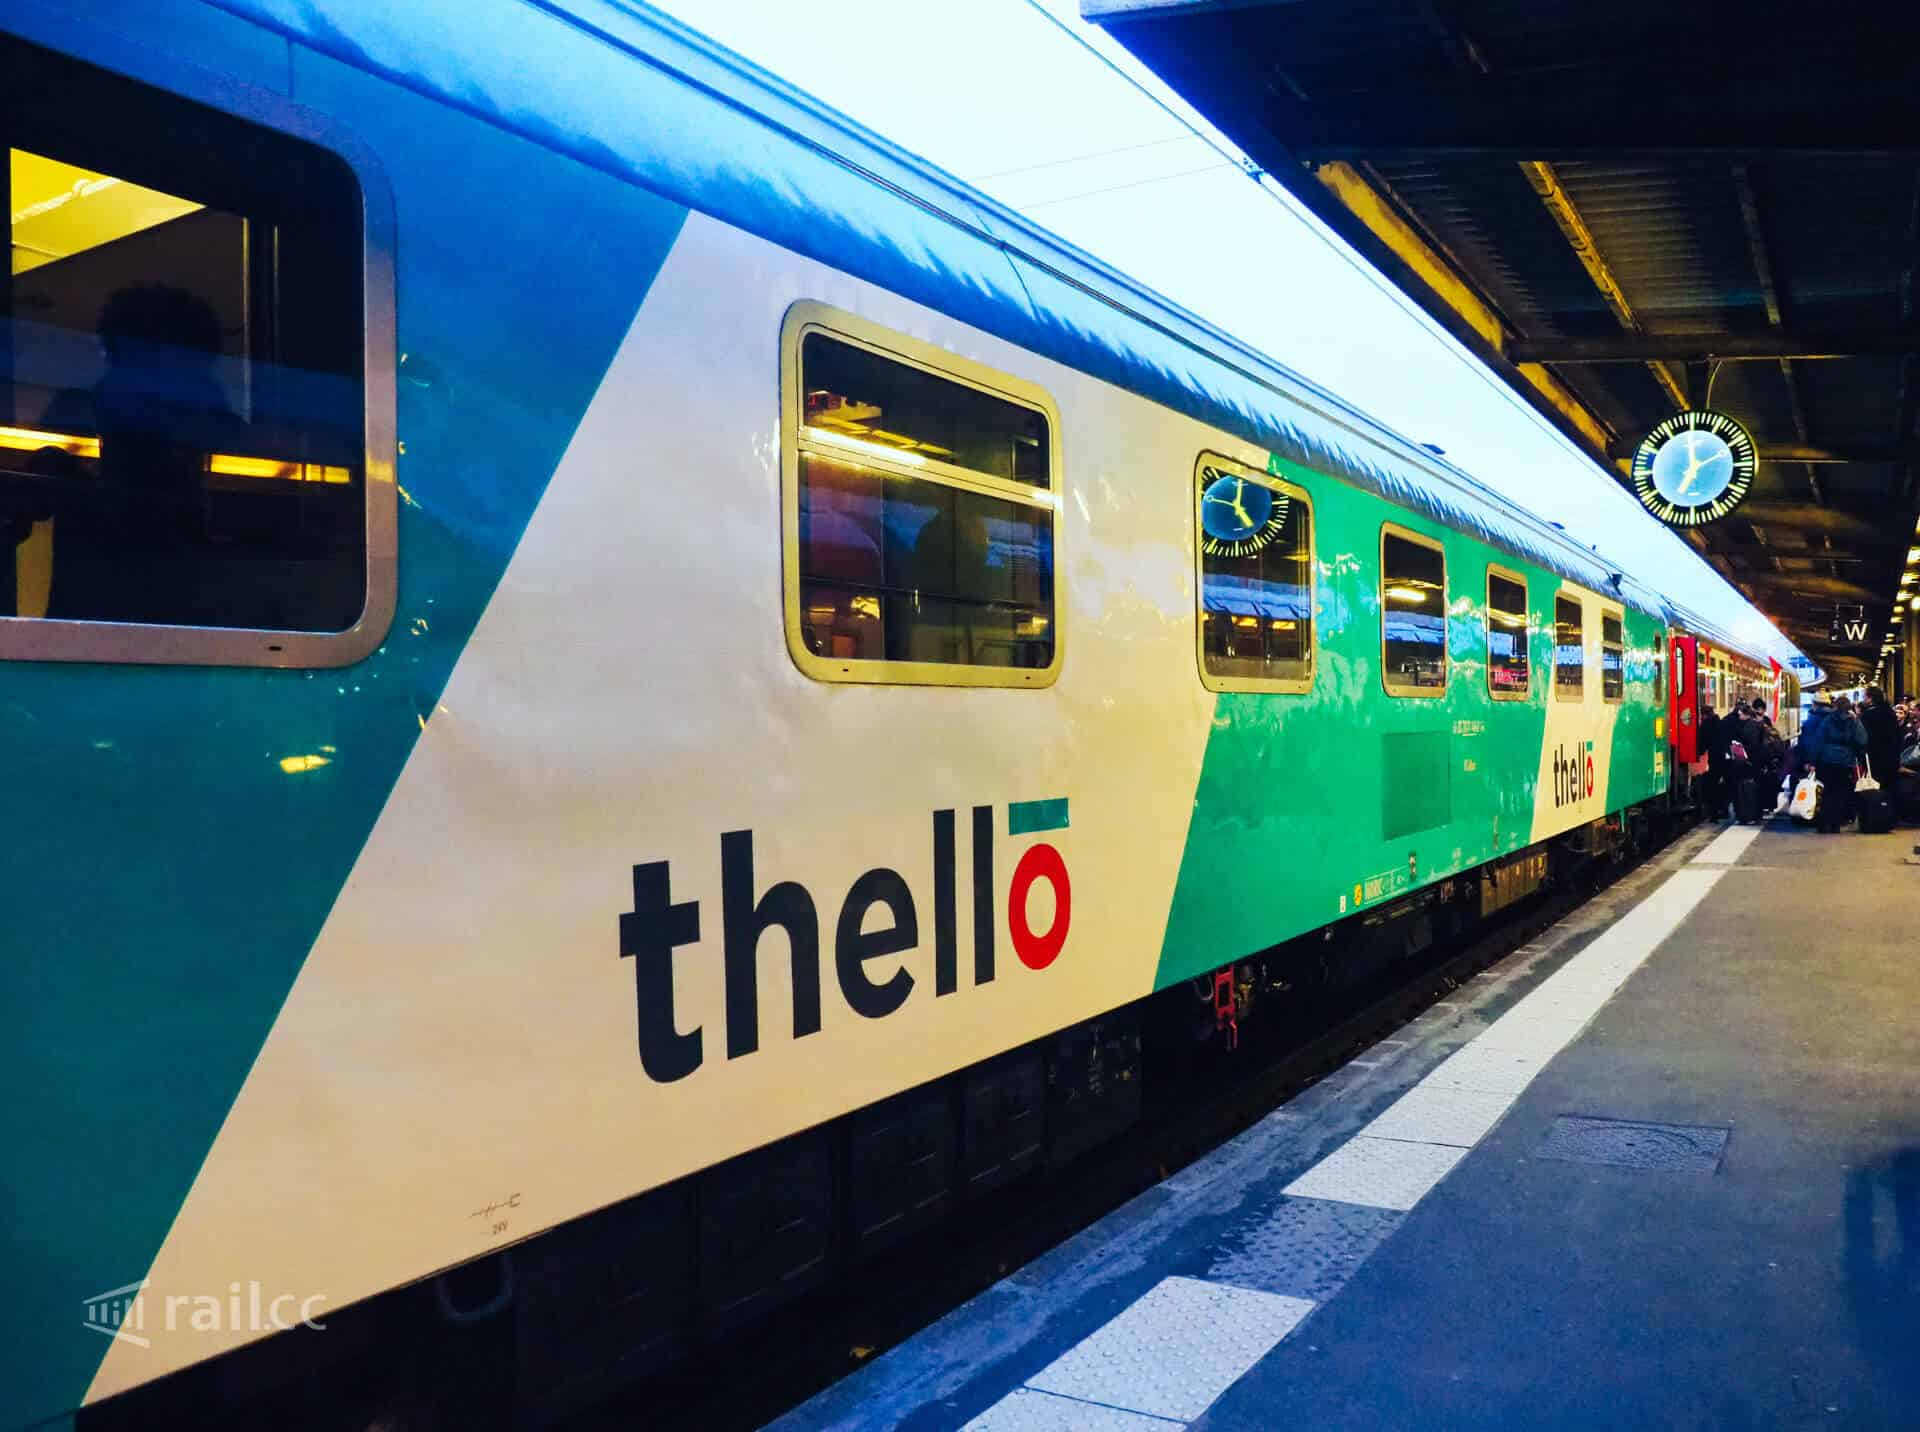 Paris to Venice by train: the Thello night train.